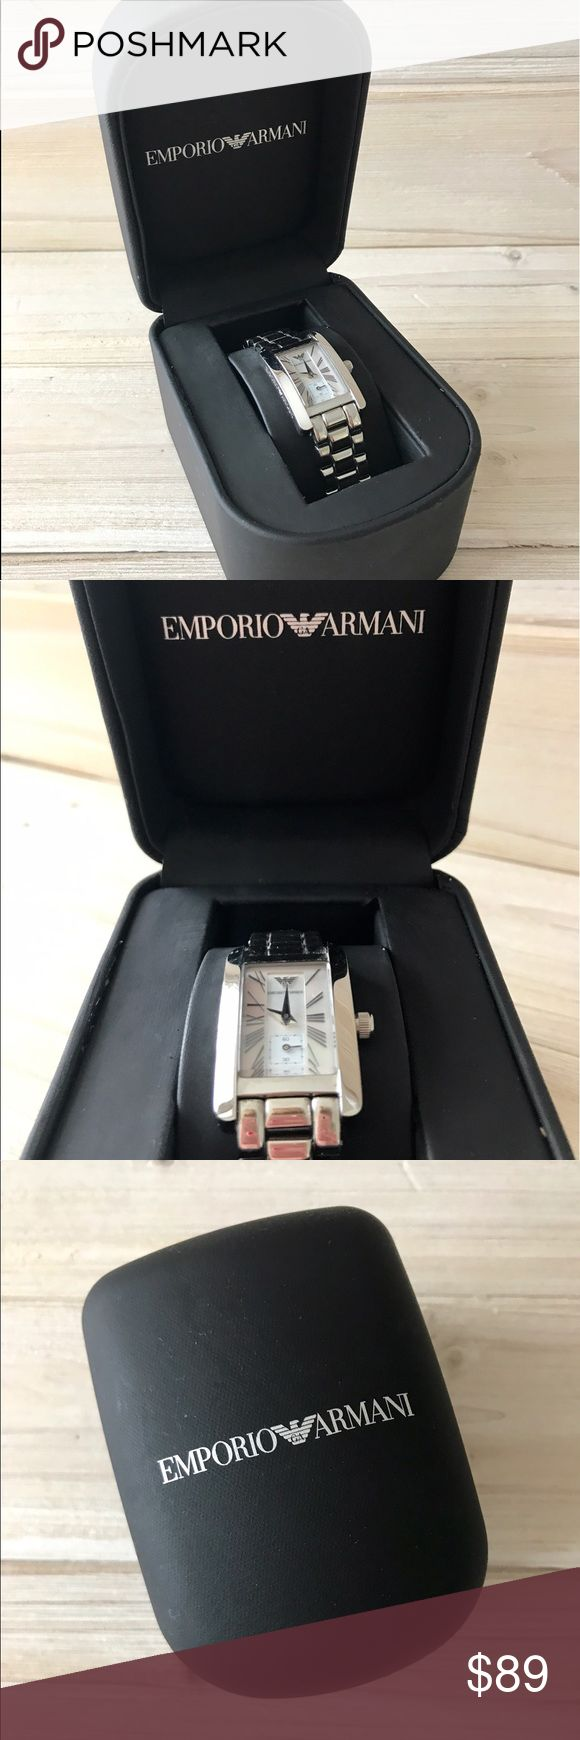 Emporio Armani Ladies Silver Classic Watch Emporio Armani Ladies Silver Classic Watch. Sophisticated style featuring a rectangular face, mother of pearl dial, Roman numeral numbering, and stainless steel throughout. Good condition with some scratches on the back of watch and bezel. Will need a battery ($5). Includes extra link and original case which has remnants of the original tag from TJ Maxx. Emporio Armani Accessories Watches